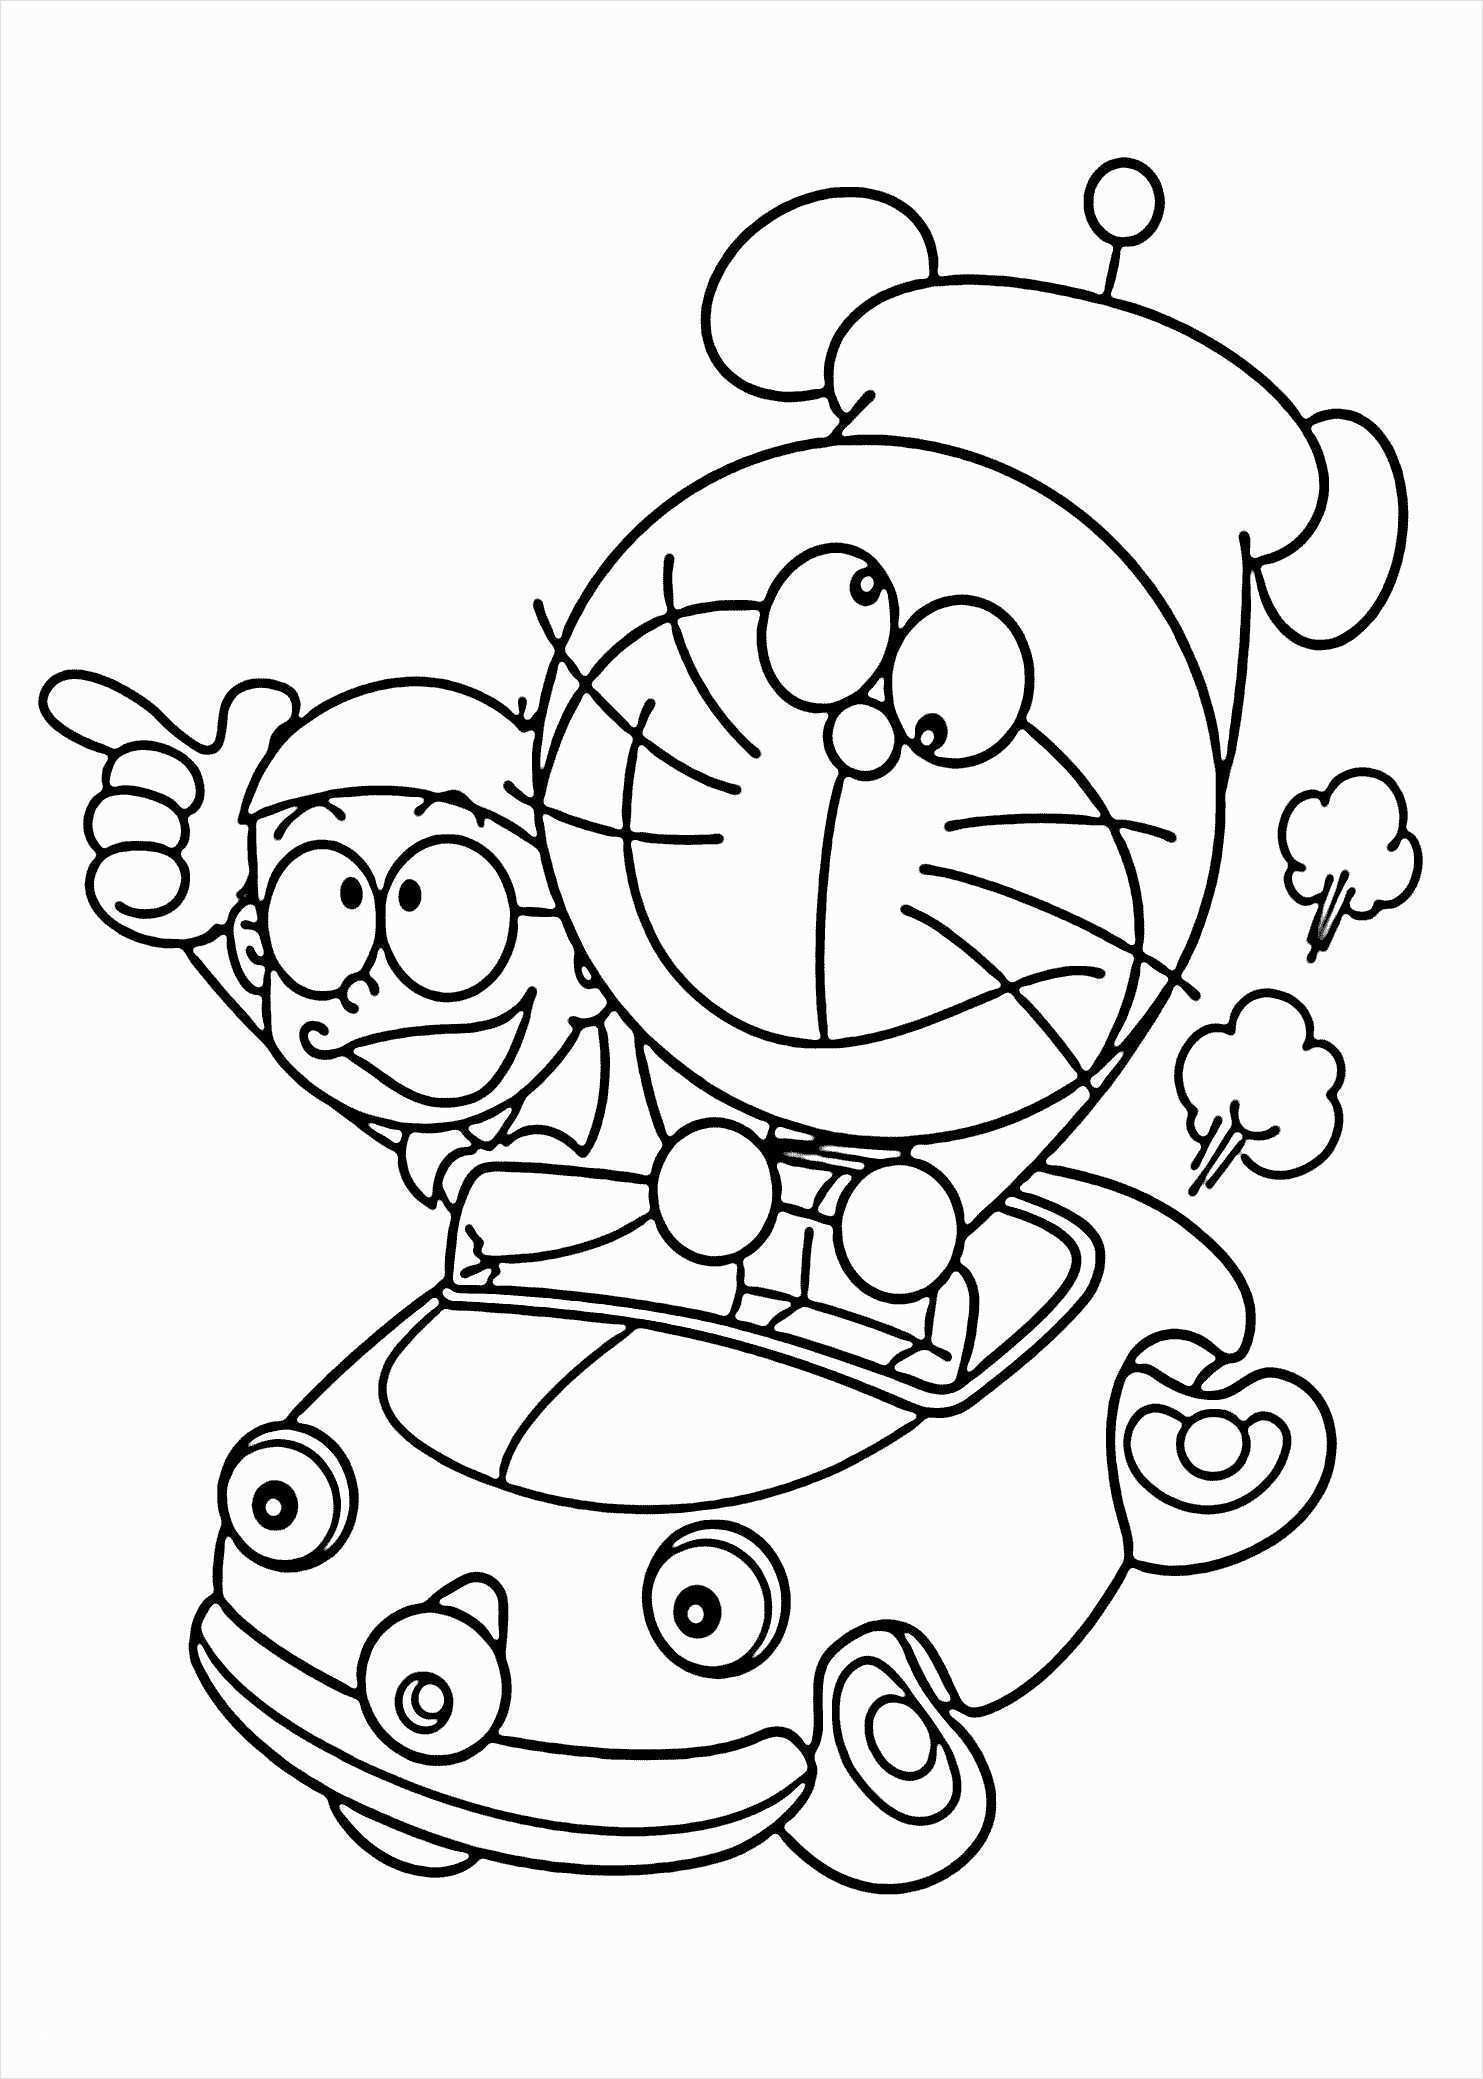 43 Luxury s line Coloring Pages